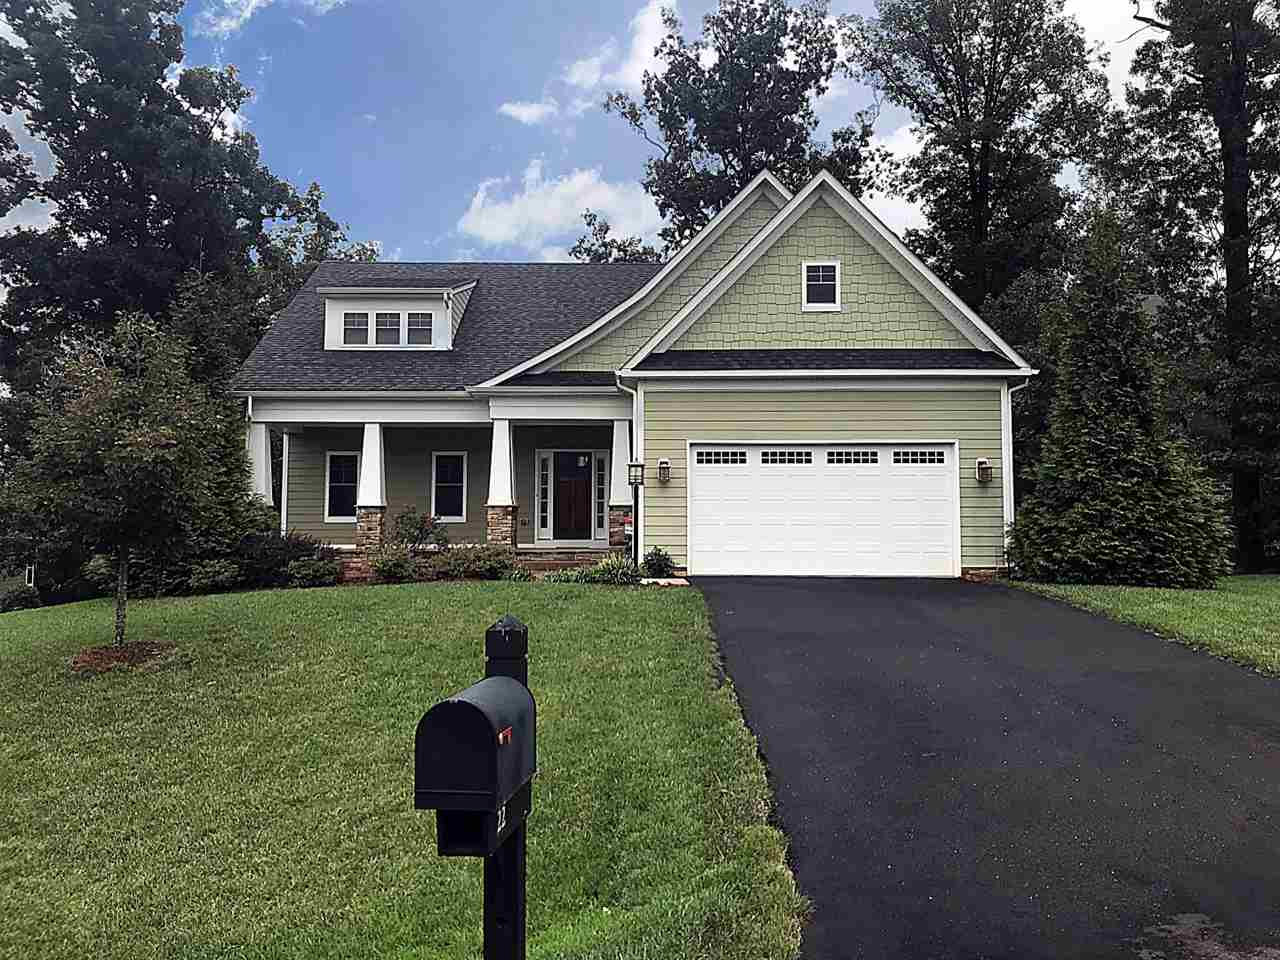 22 Bear Run Ct, Zion Crossroads